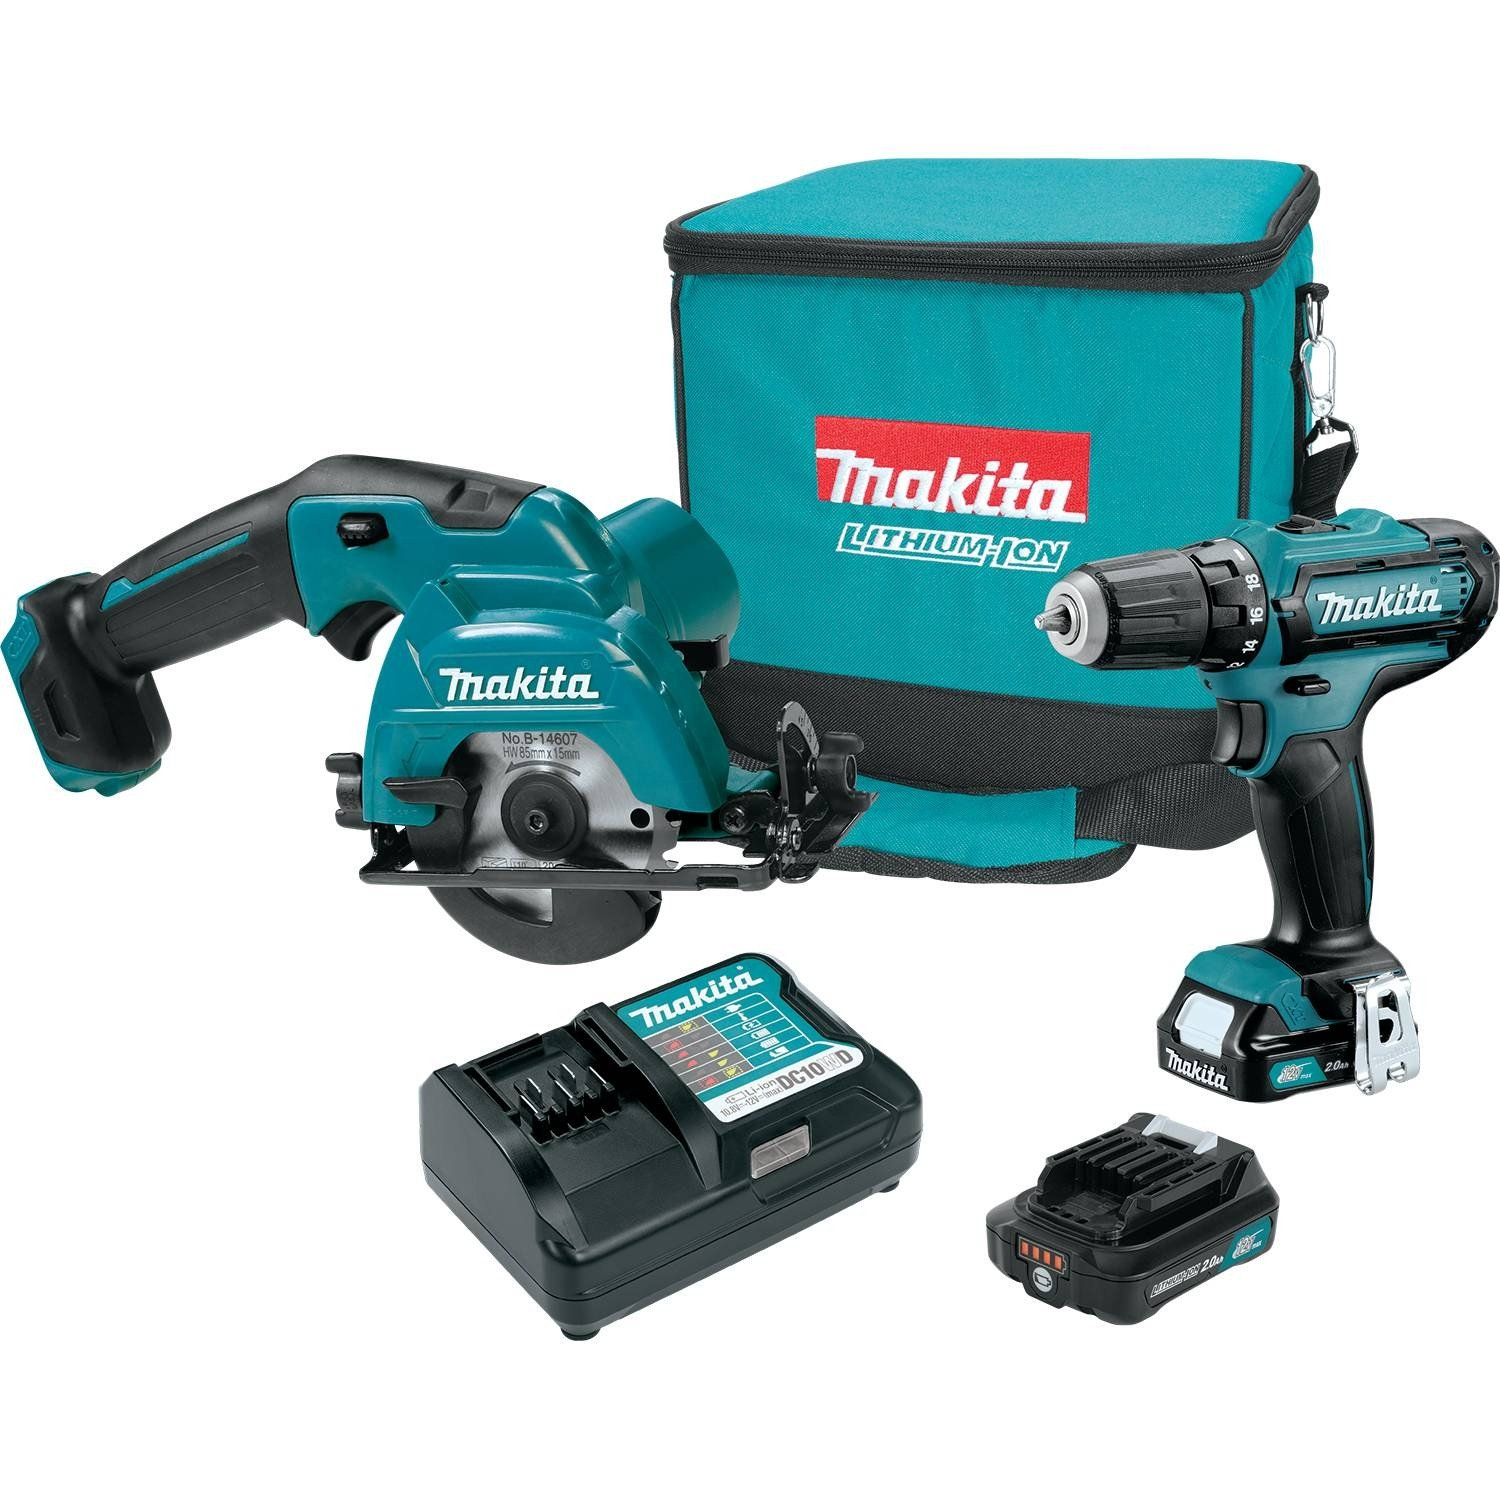 Makita CT227R CXT Lithium-Ion Cordless Combo Kit 2 Piece , 12V